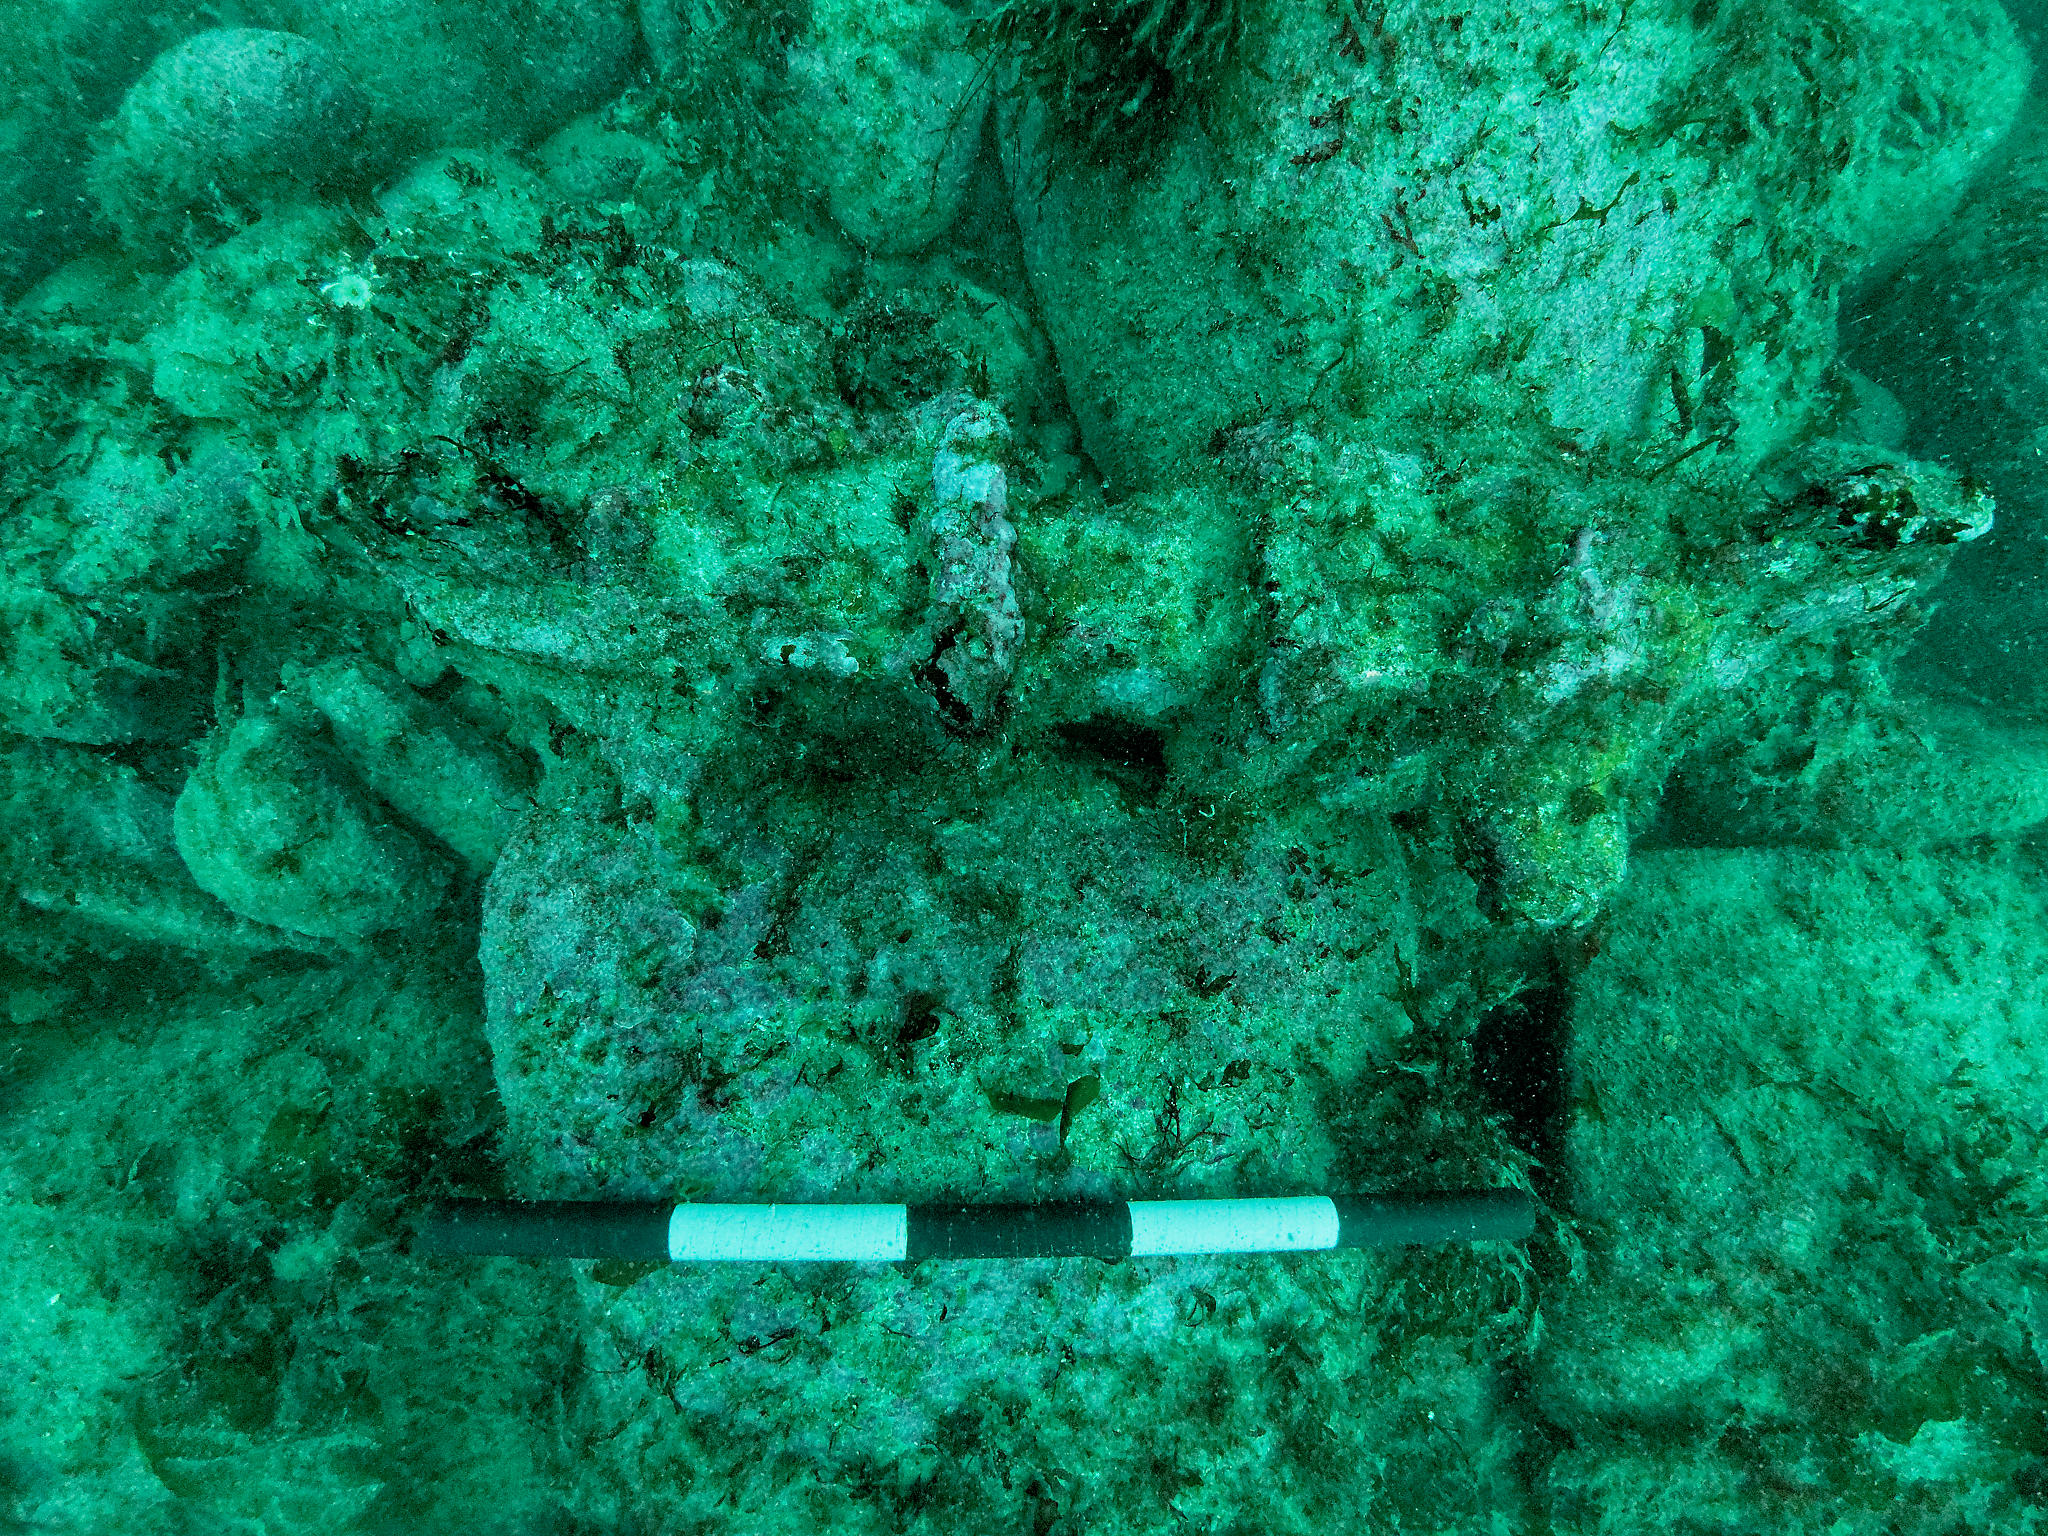 Underwater photograph of one of the possible wrought iron windlasses (O3) found on the seabed to the south of the cargo mound. The scale is 0.5m long and it is hard to see because of the green hue of the water.